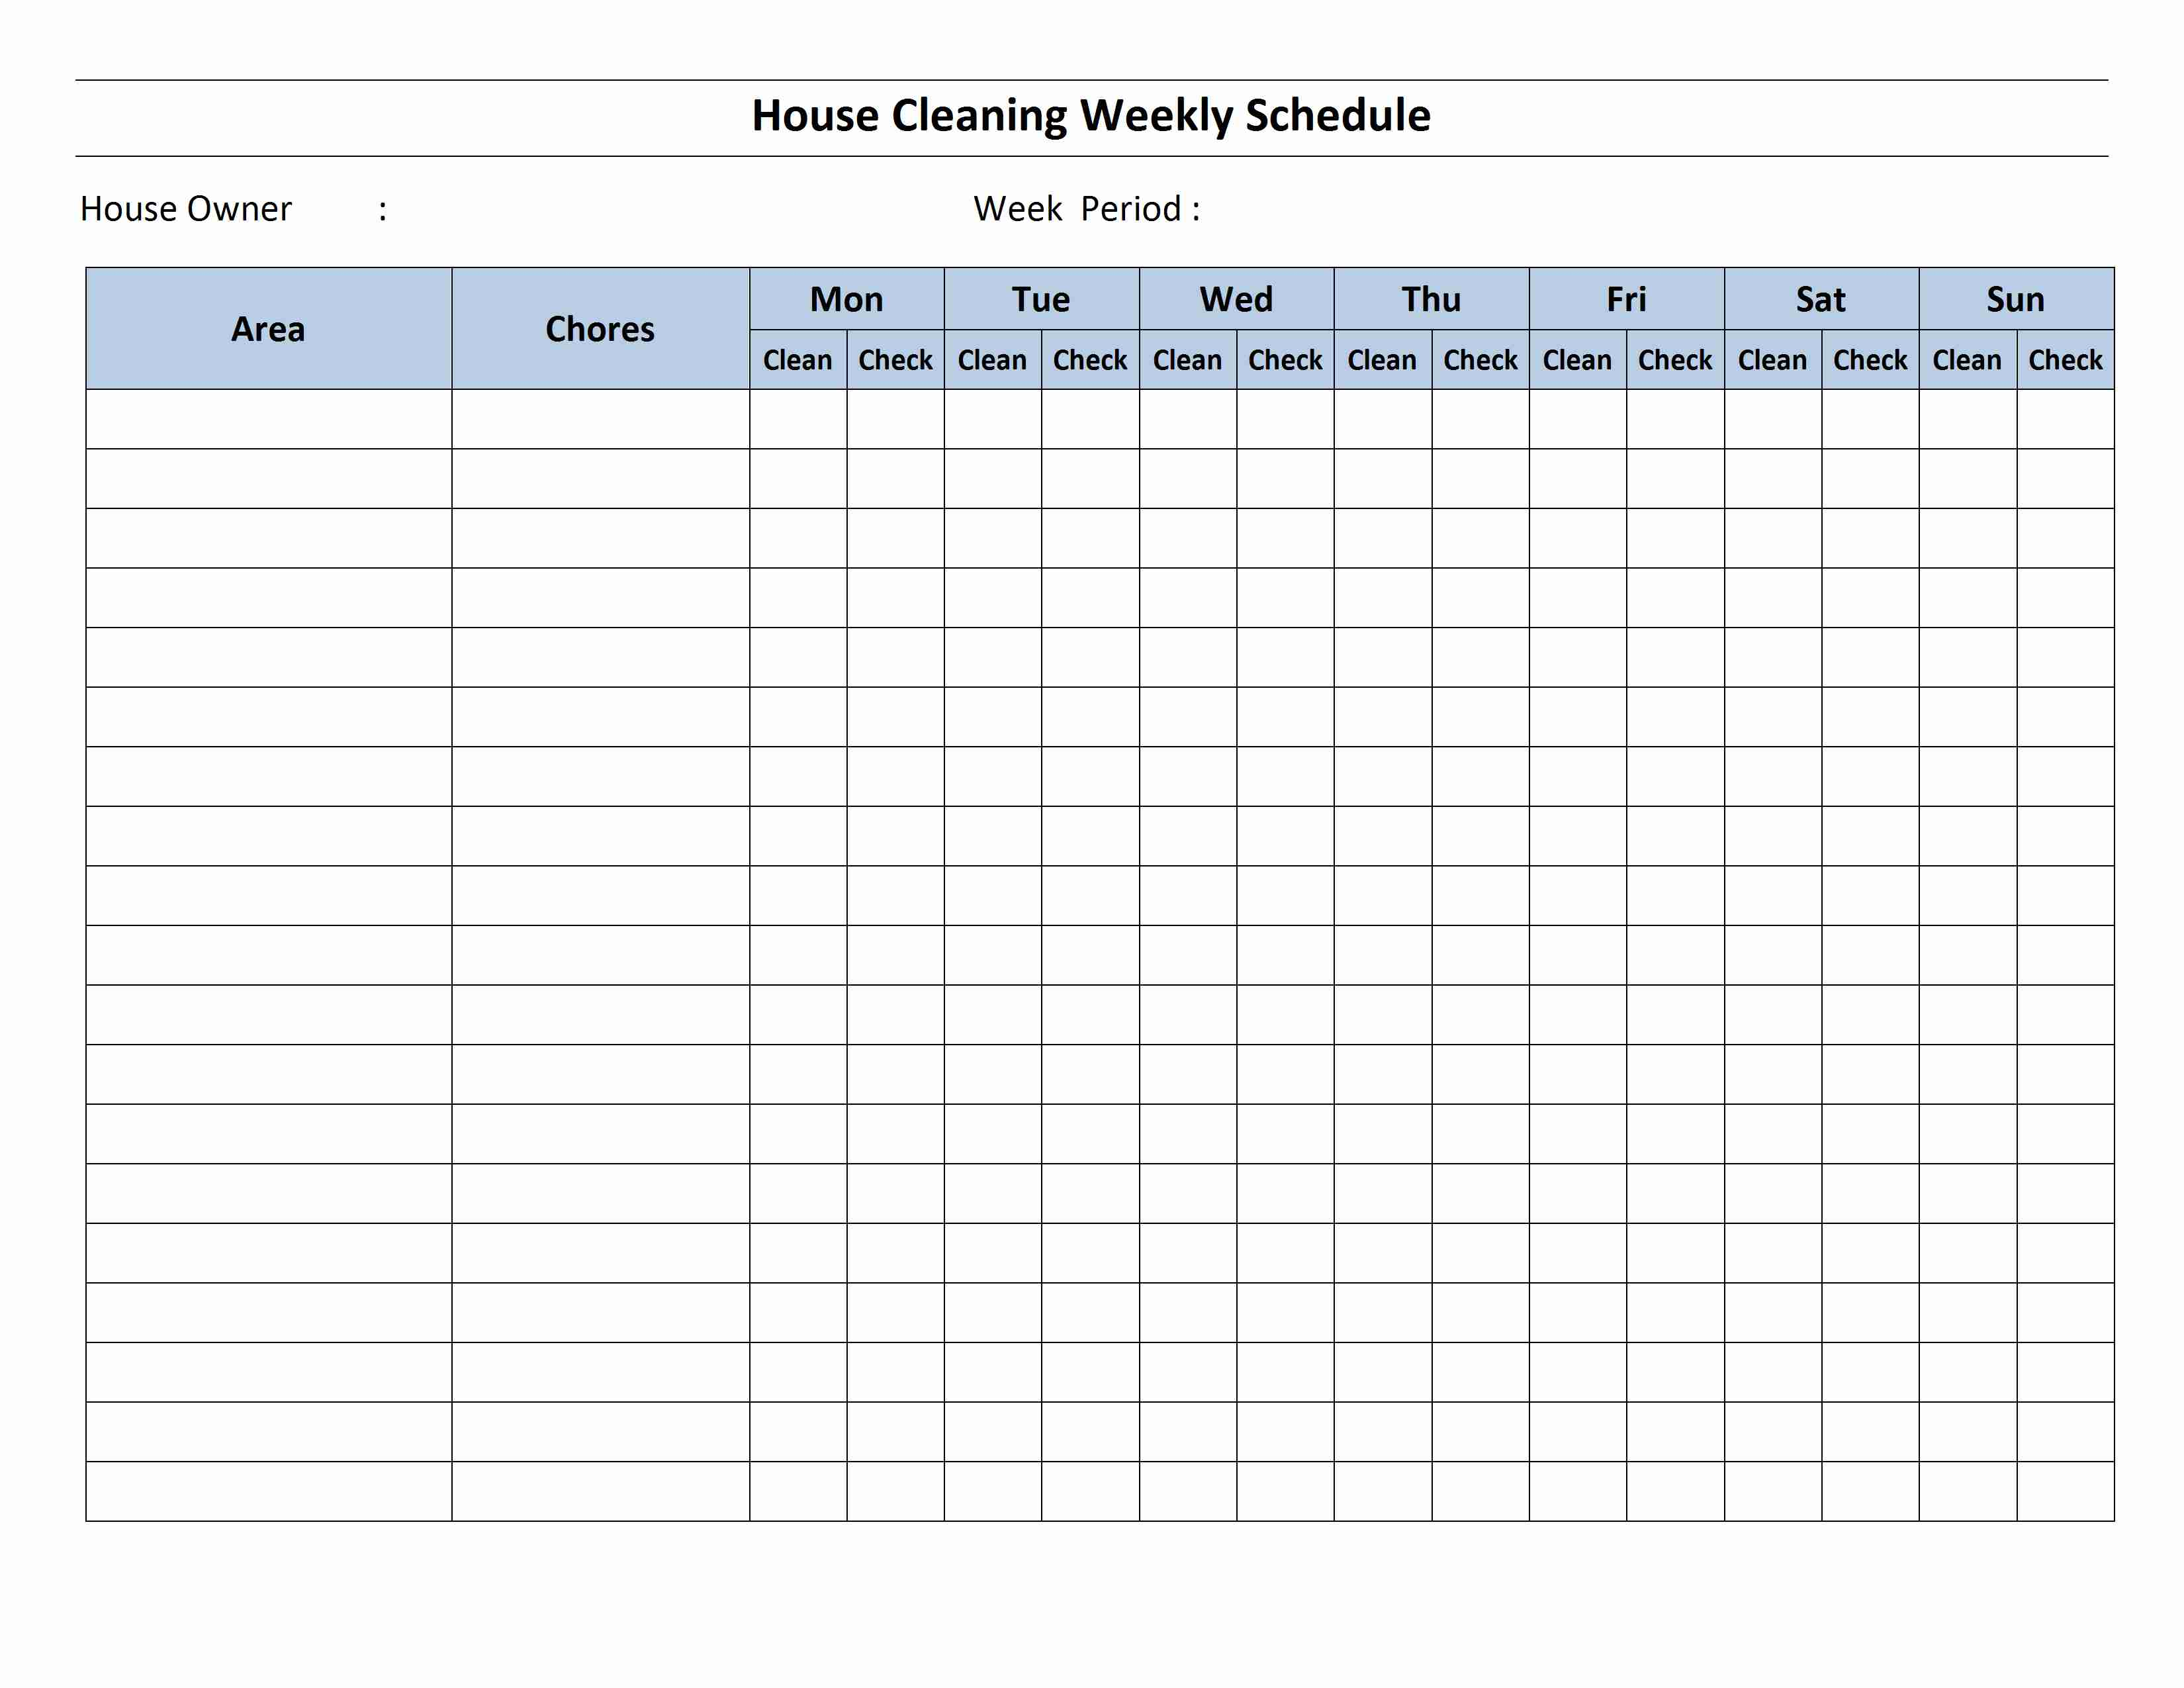 Cleaning Schedule Template | aplg planetariums.org